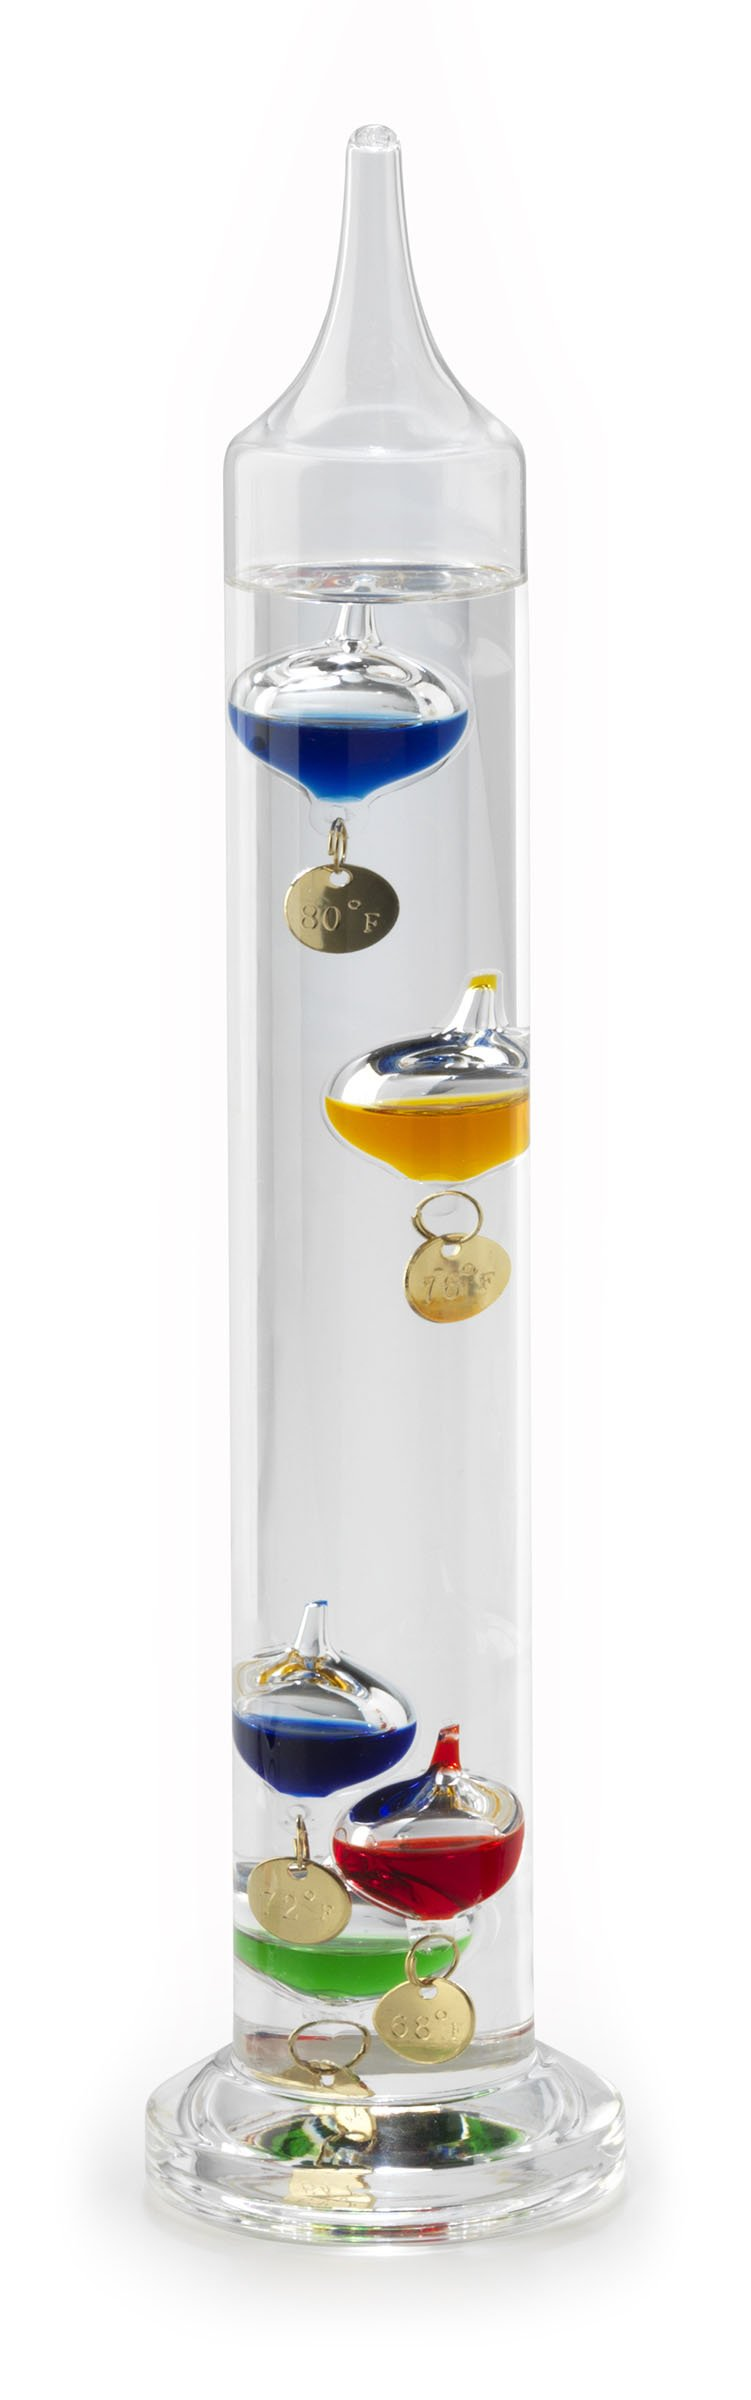 Lily's Home Galileo Thermometer, A Timeless Design that Measures Temperatures from 64ºF to 80ºF, 5 Multi-Colored Spheres (11 Inches)